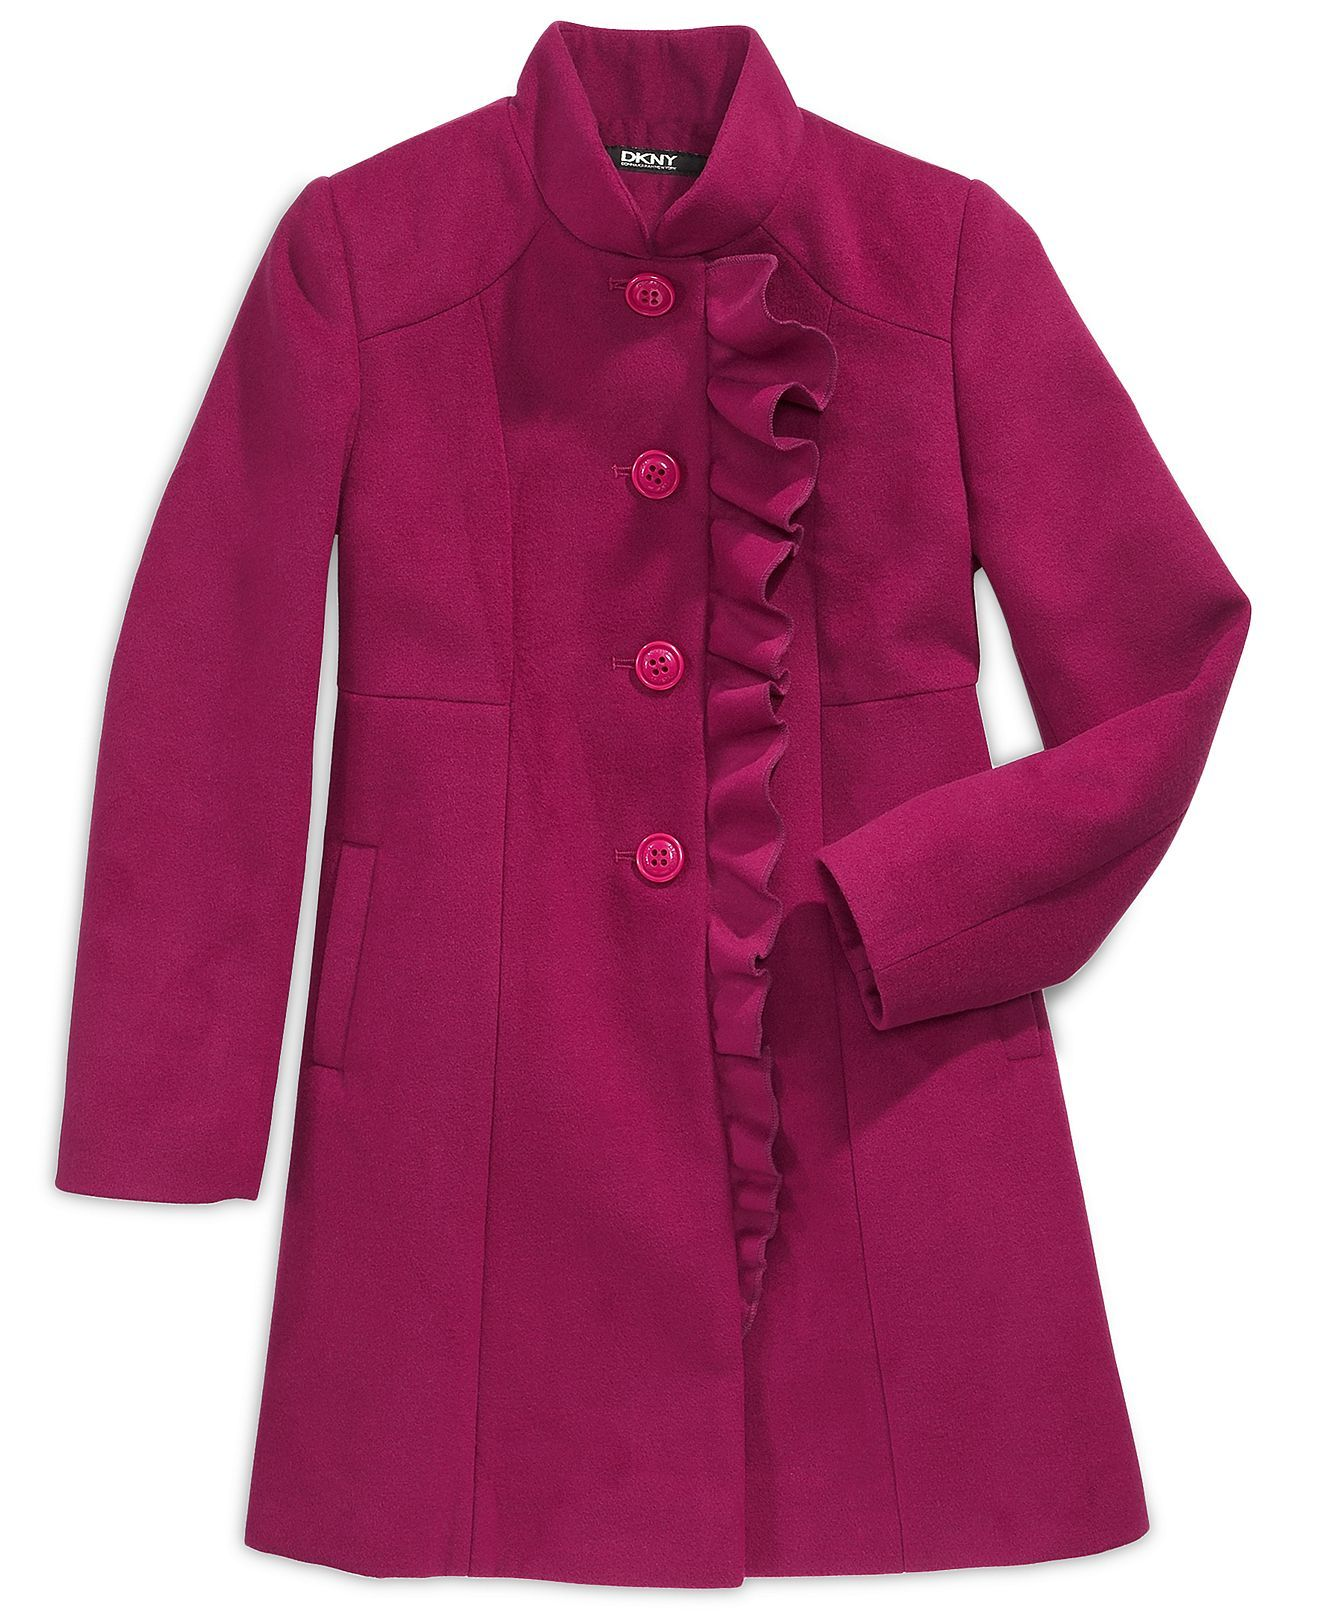 DKNY Kids Jacket, Girls Asymmetrical Ruffle Coats - Kids Girls 7 ...